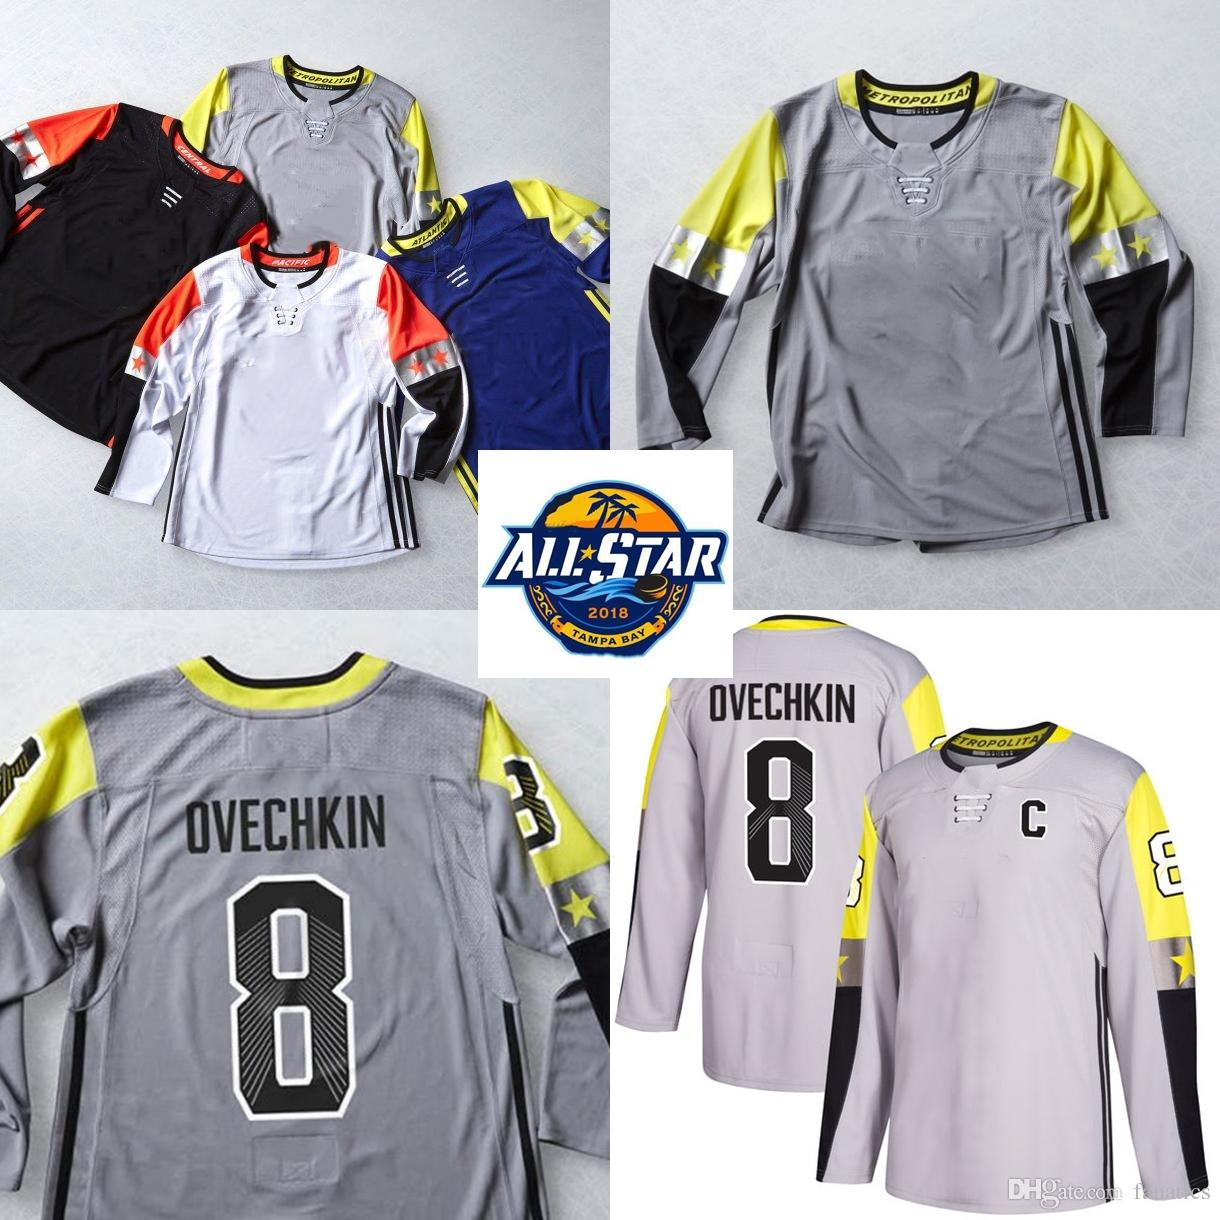 Mens 2018 All-Star AD Metro Division 8 Alexander Ovechkin John ... 7f1bcf3fc